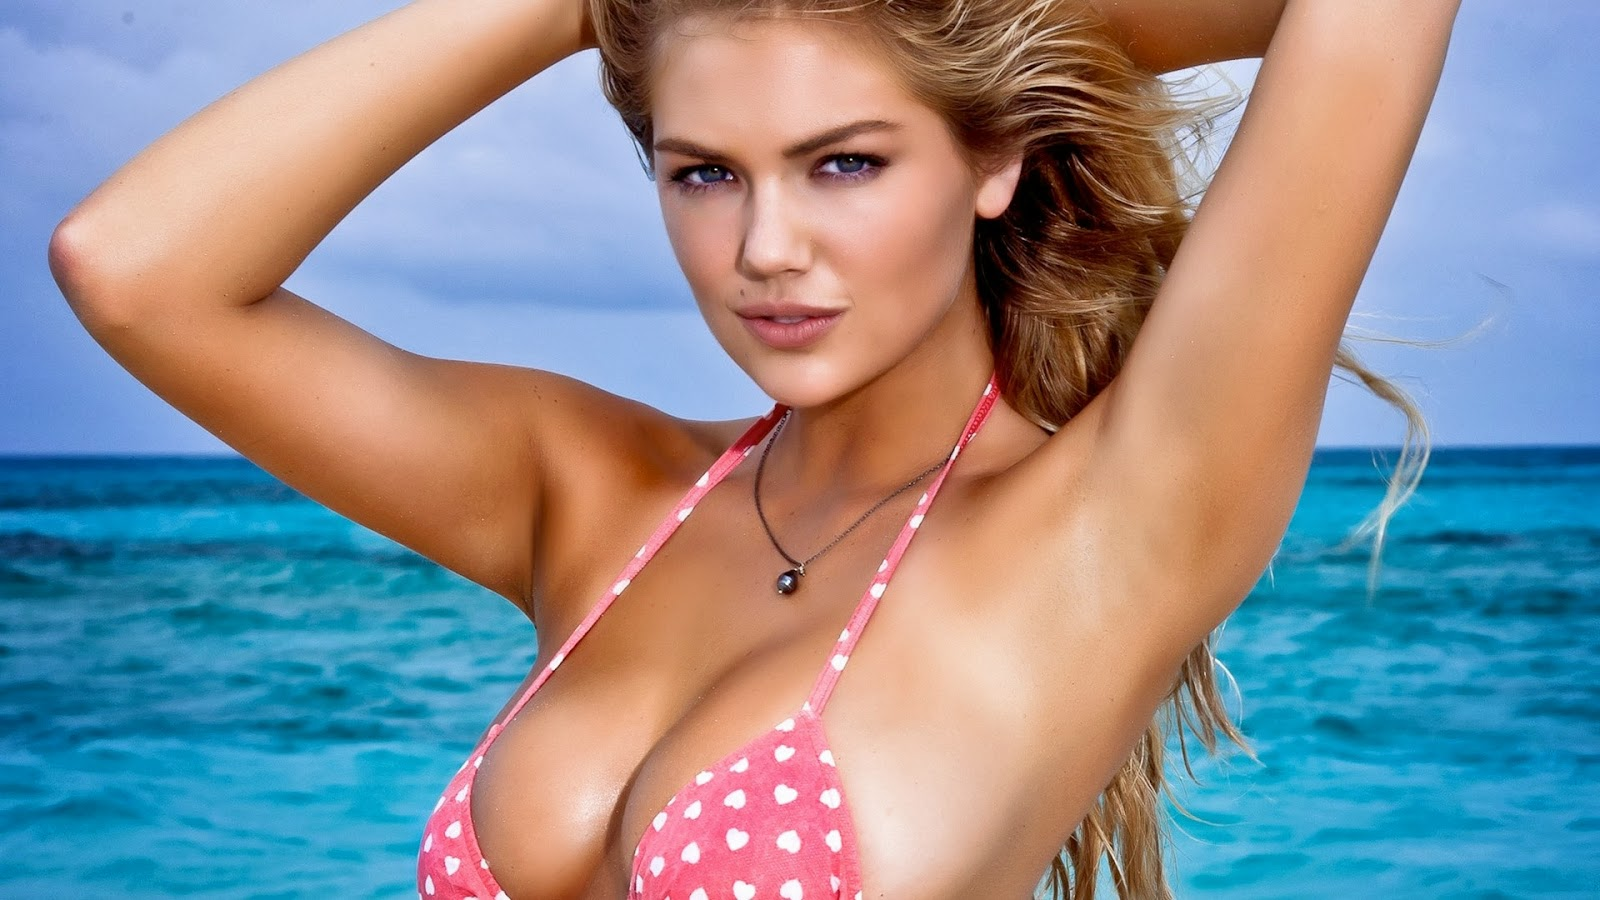 hairstyle 2013 backgrou part 1 kate upton hairstyle 2013 backgrou